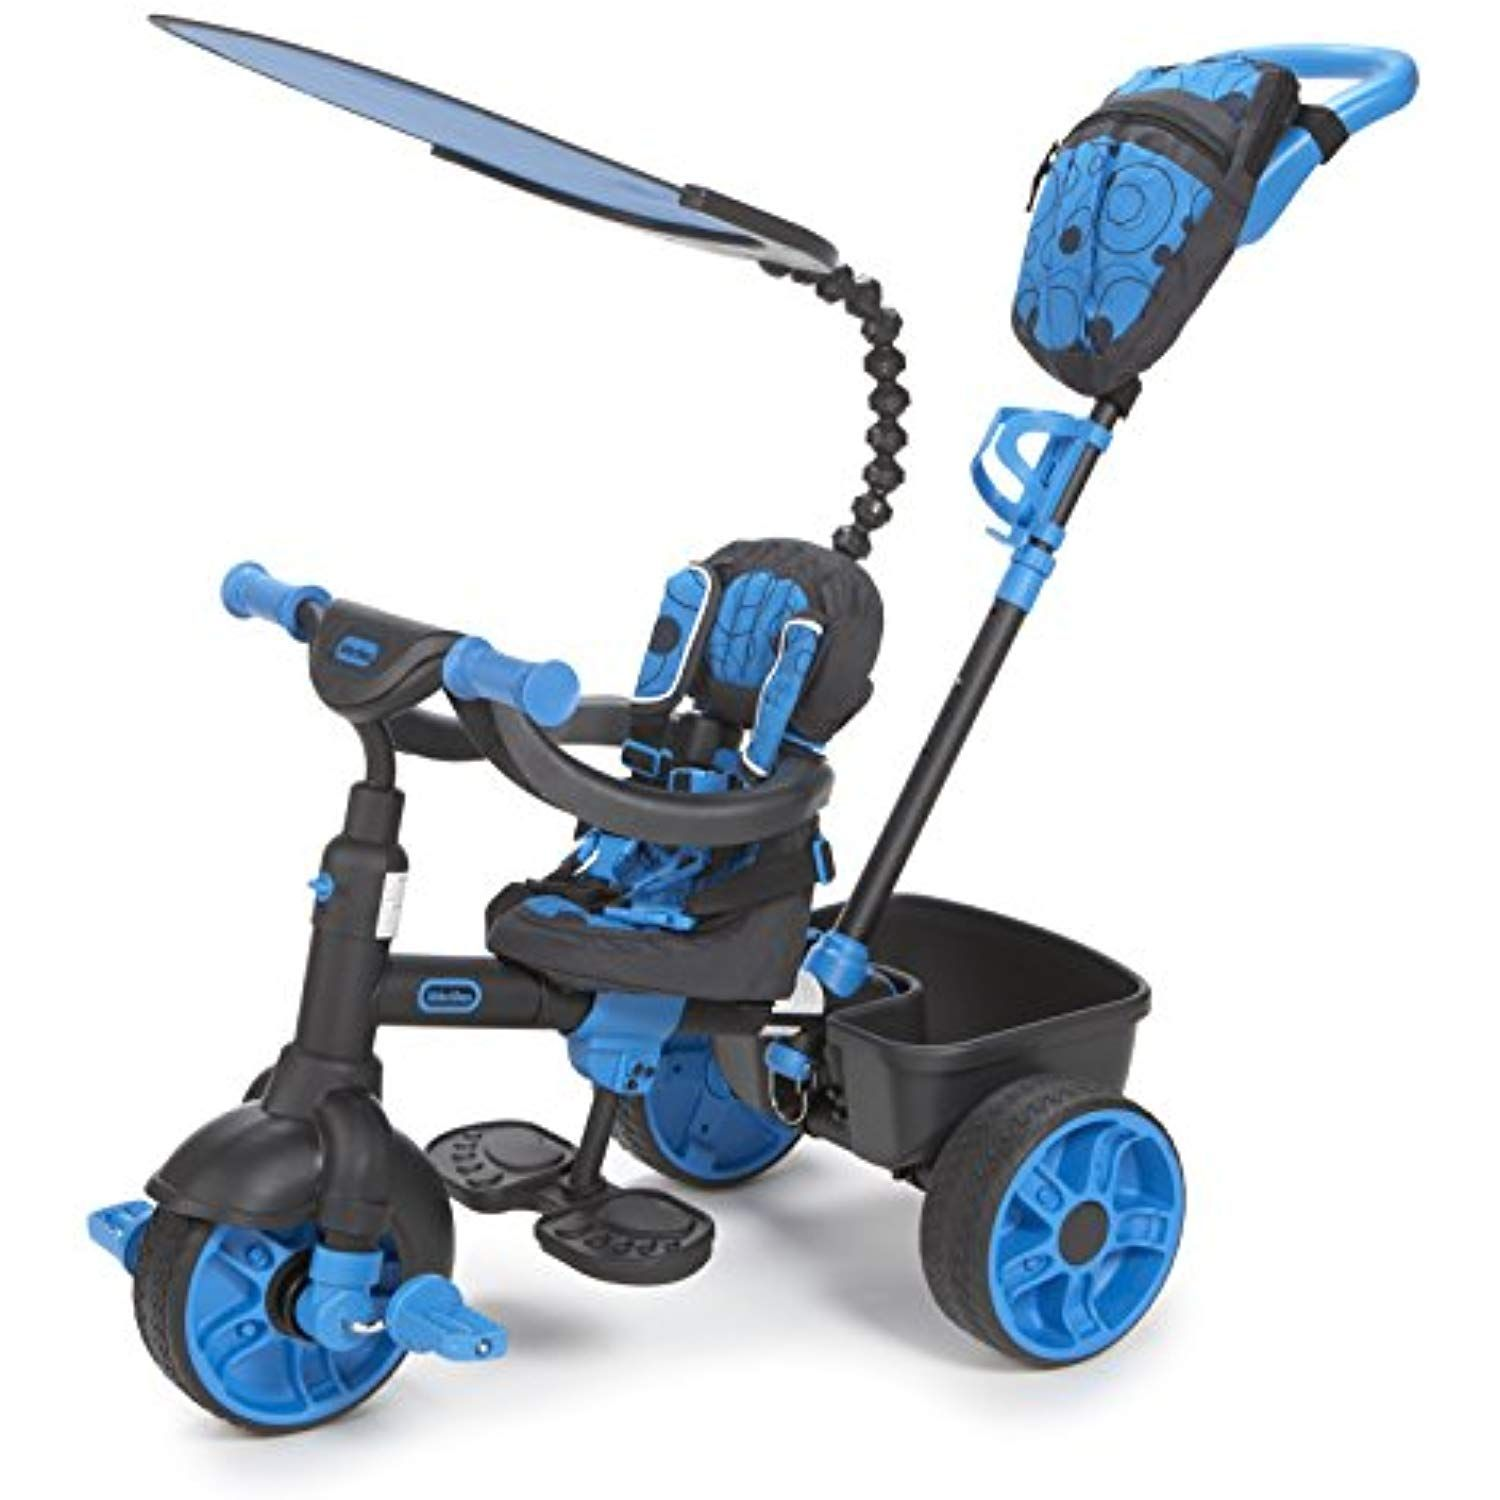 Little Tikes 4in1 Ride On, Neon Blue, Deluxe Edition